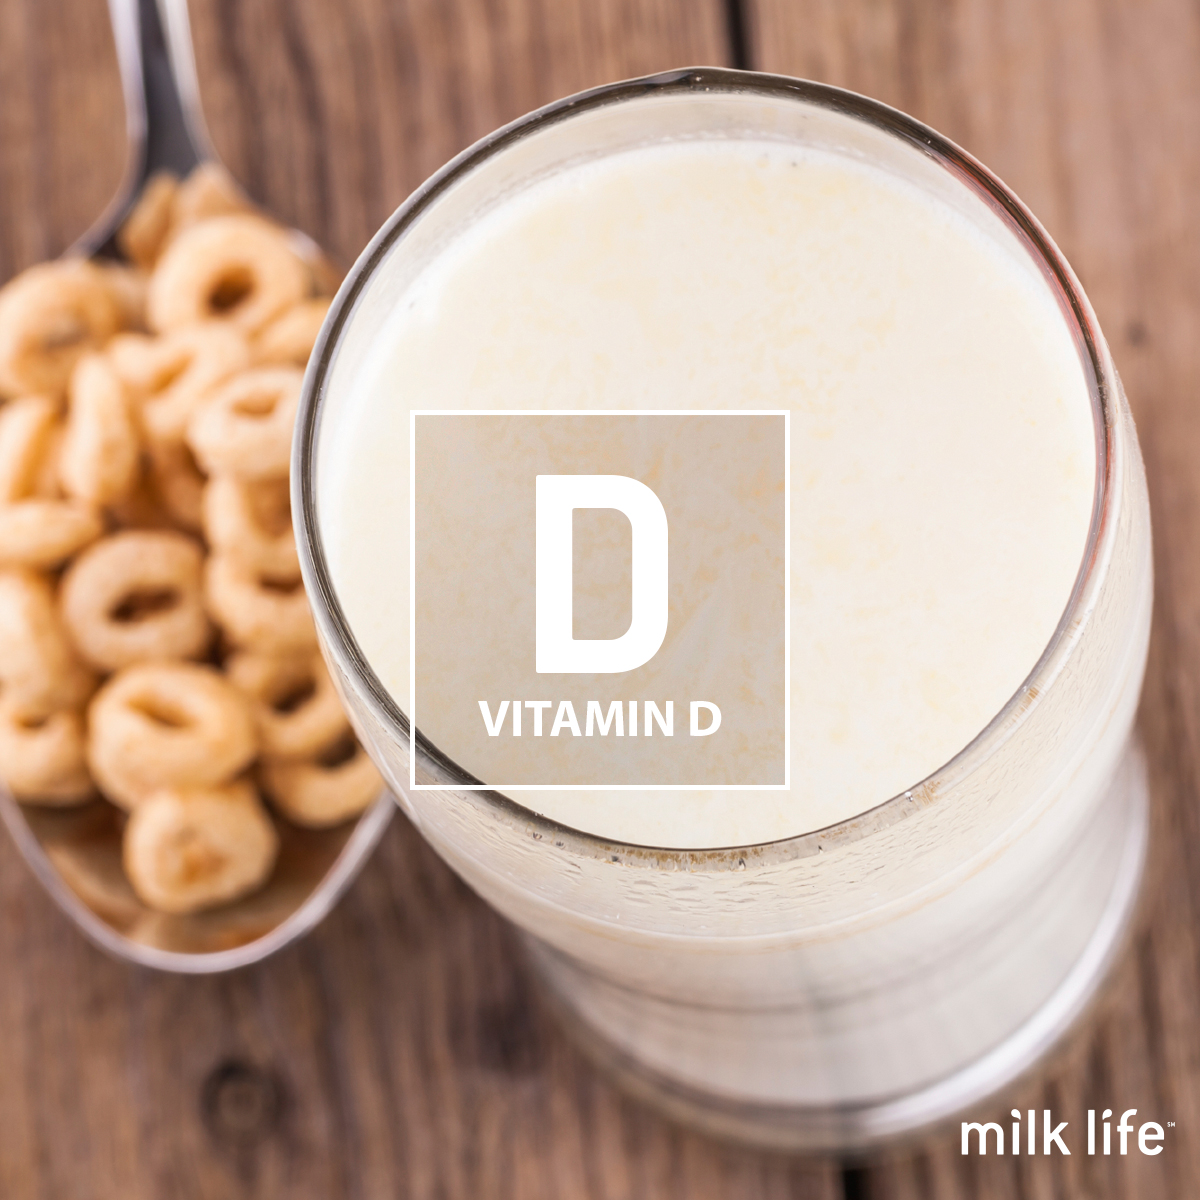 Vitamin D is a nutrient in milk